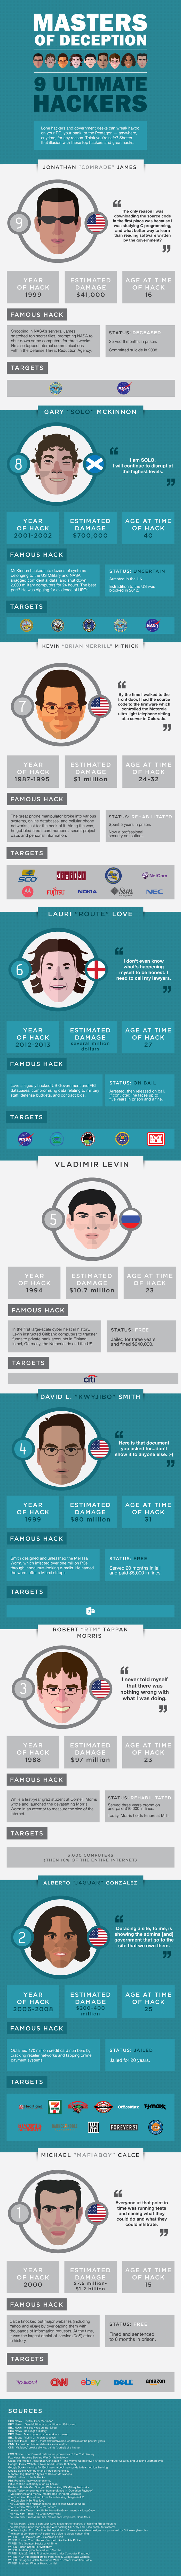 Masters of Hacking Infographic